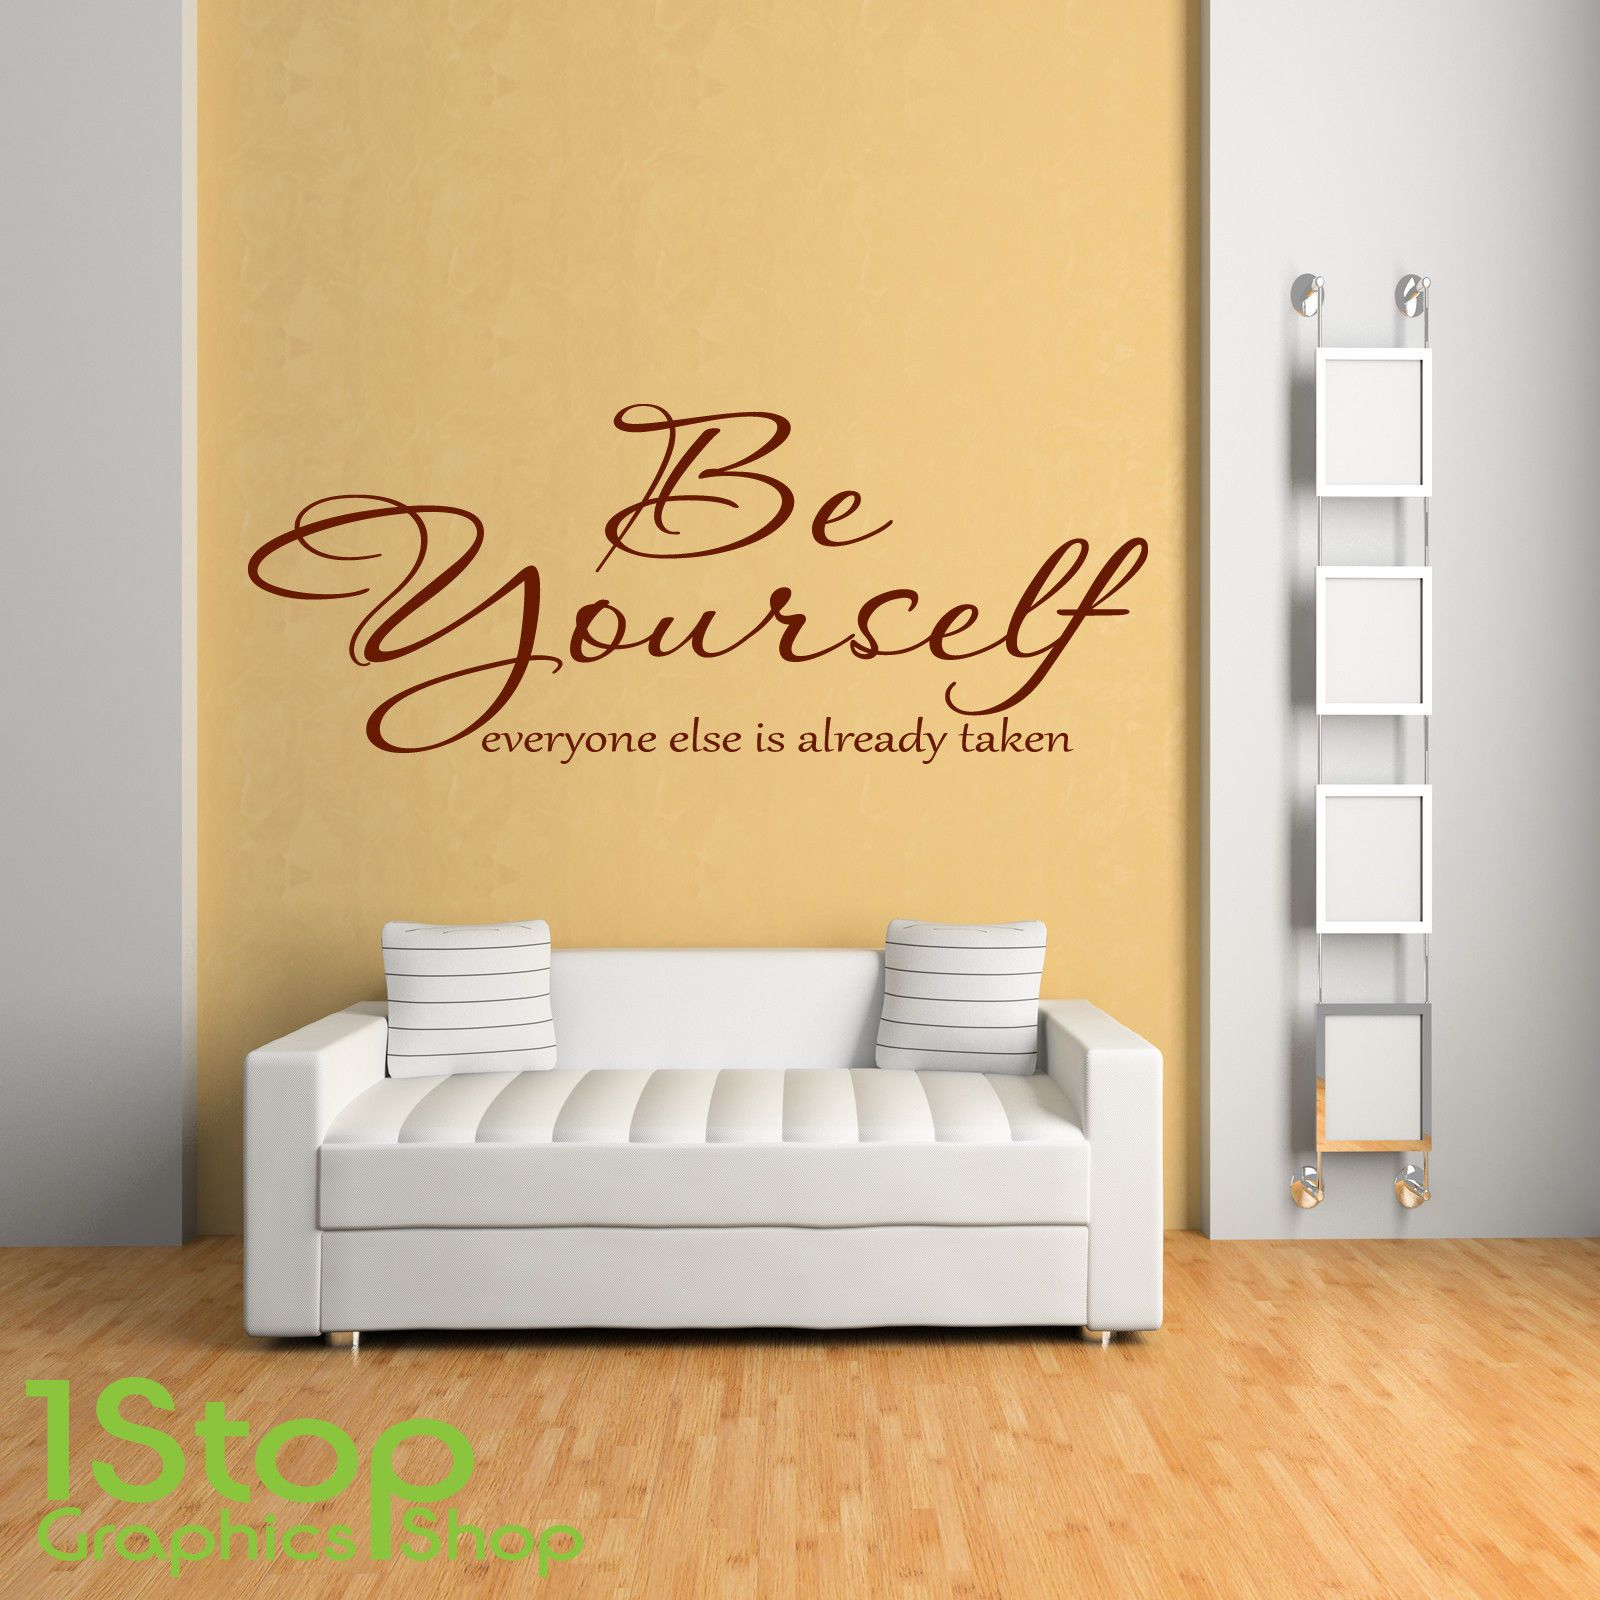 Be Yourself Wall Sticker Quote - Home Bedroom Wall Art Decal X76 ...